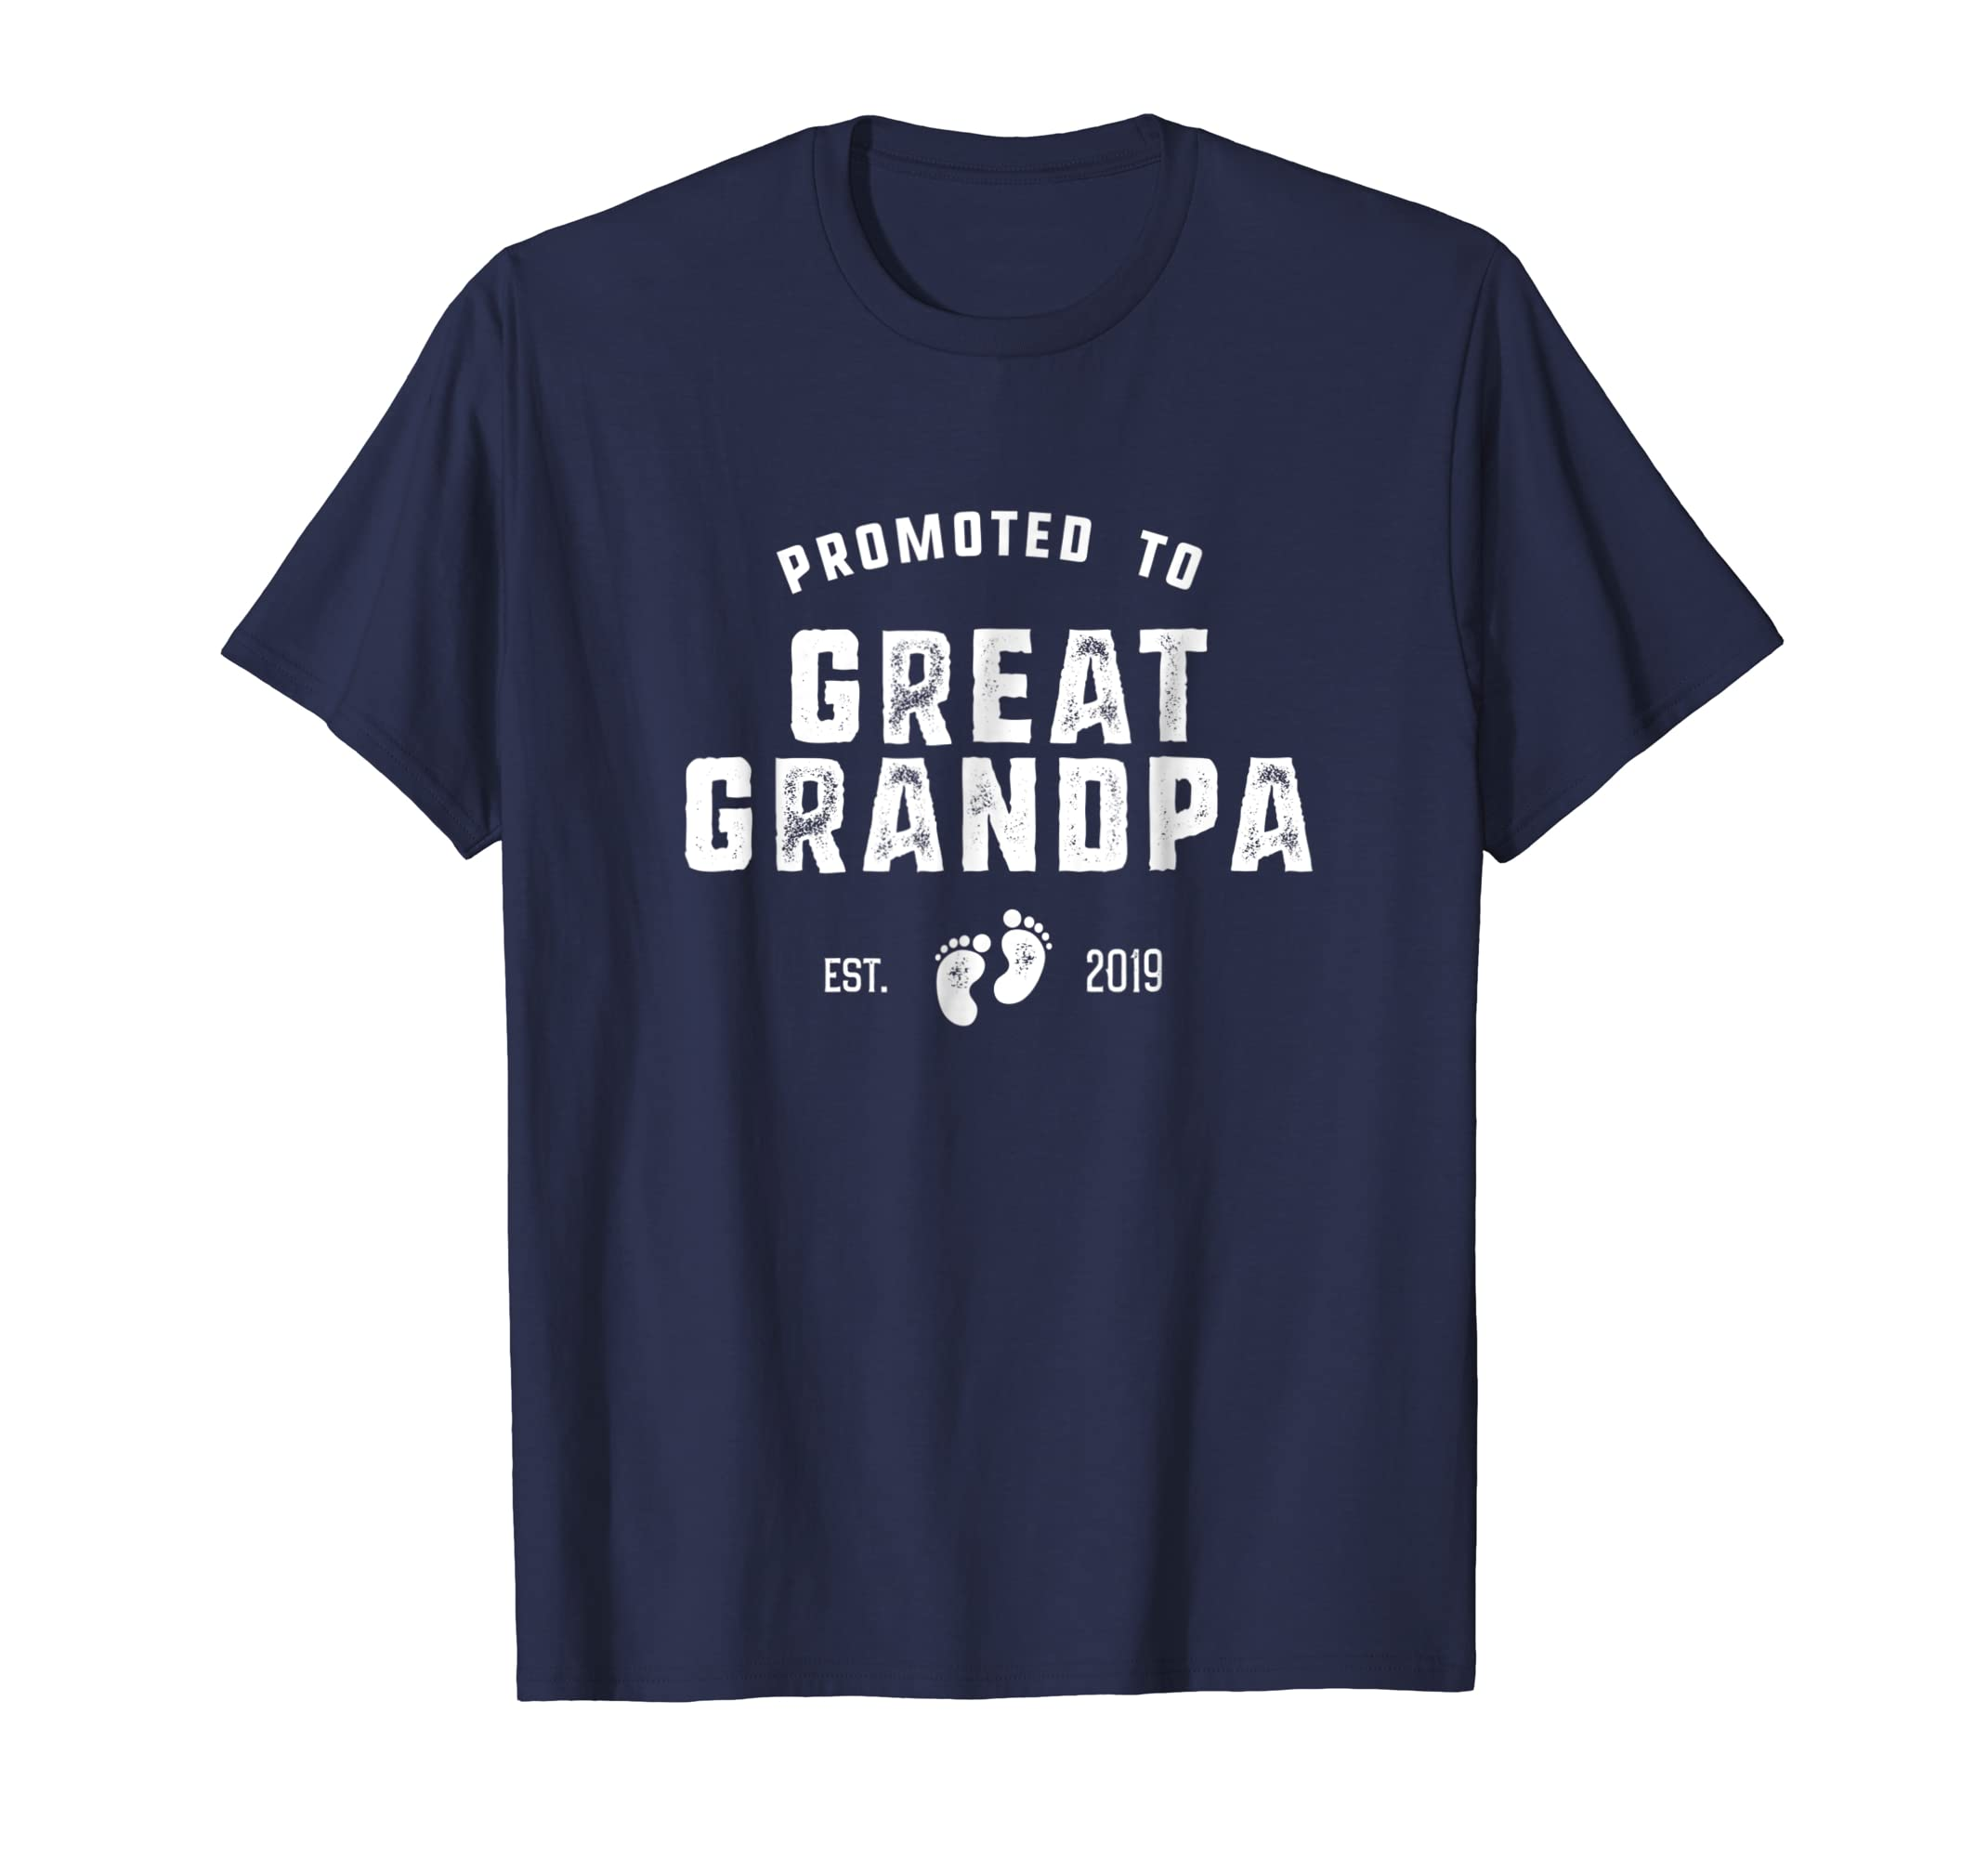 44f43f81 Amazon.com: Promoted to Great Grandpa Pregnancy Announcement Shirt: Clothing